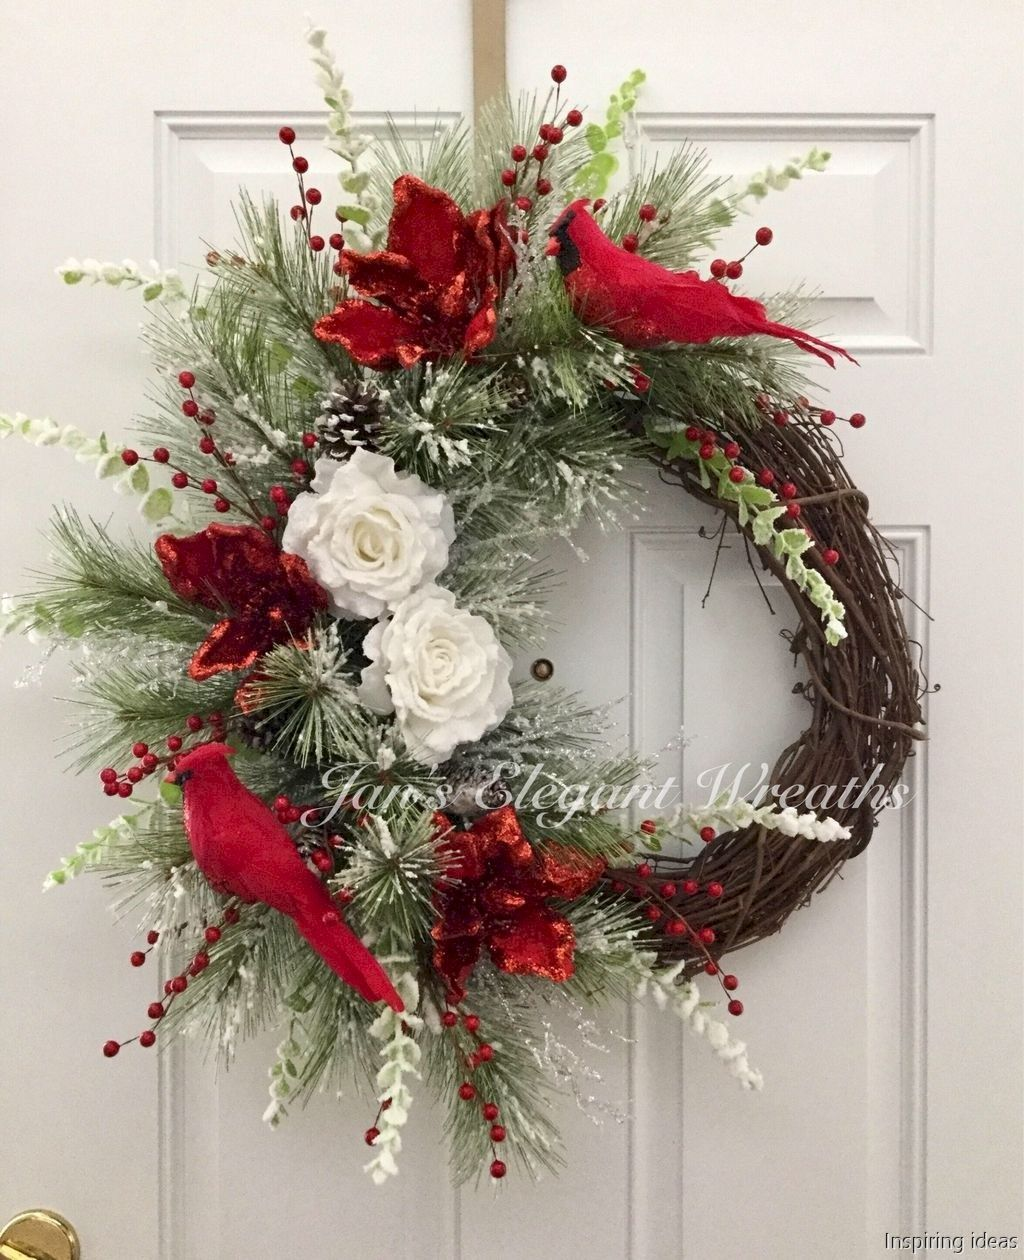 65 Awesome Valentine Wreaths Ideas For Front Door